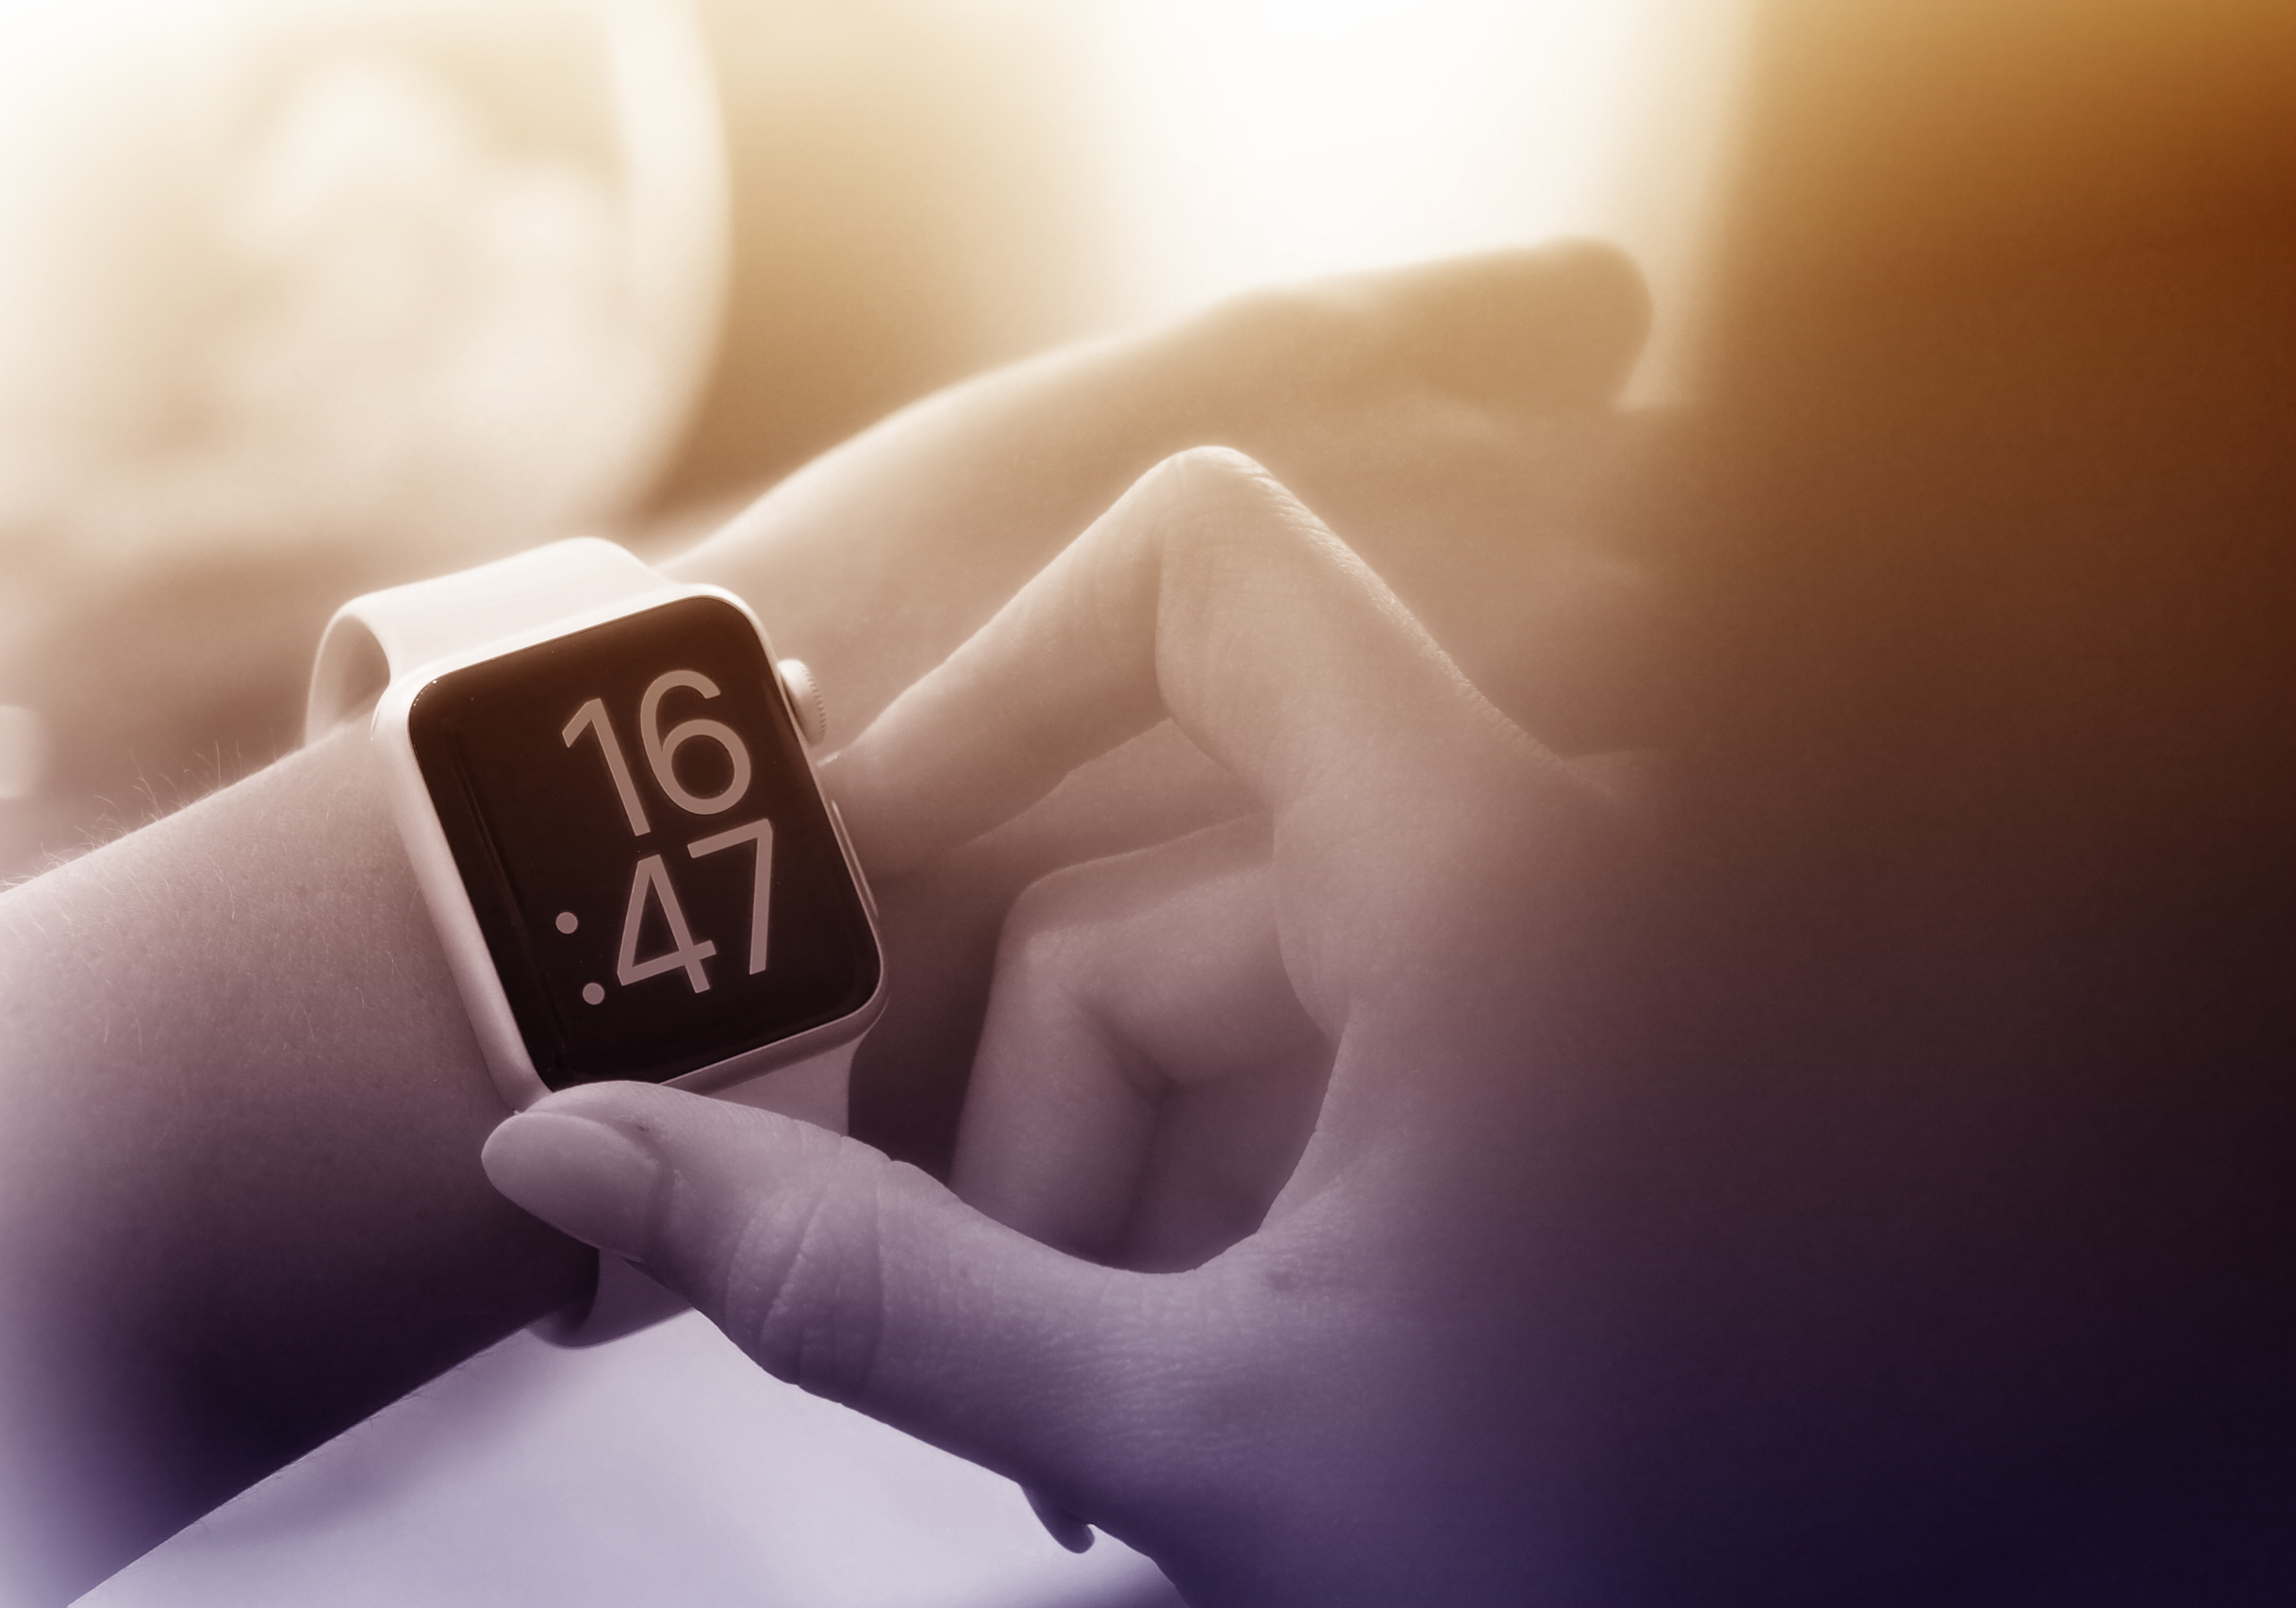 Time to go - a woman checks the time on smartwatch photo